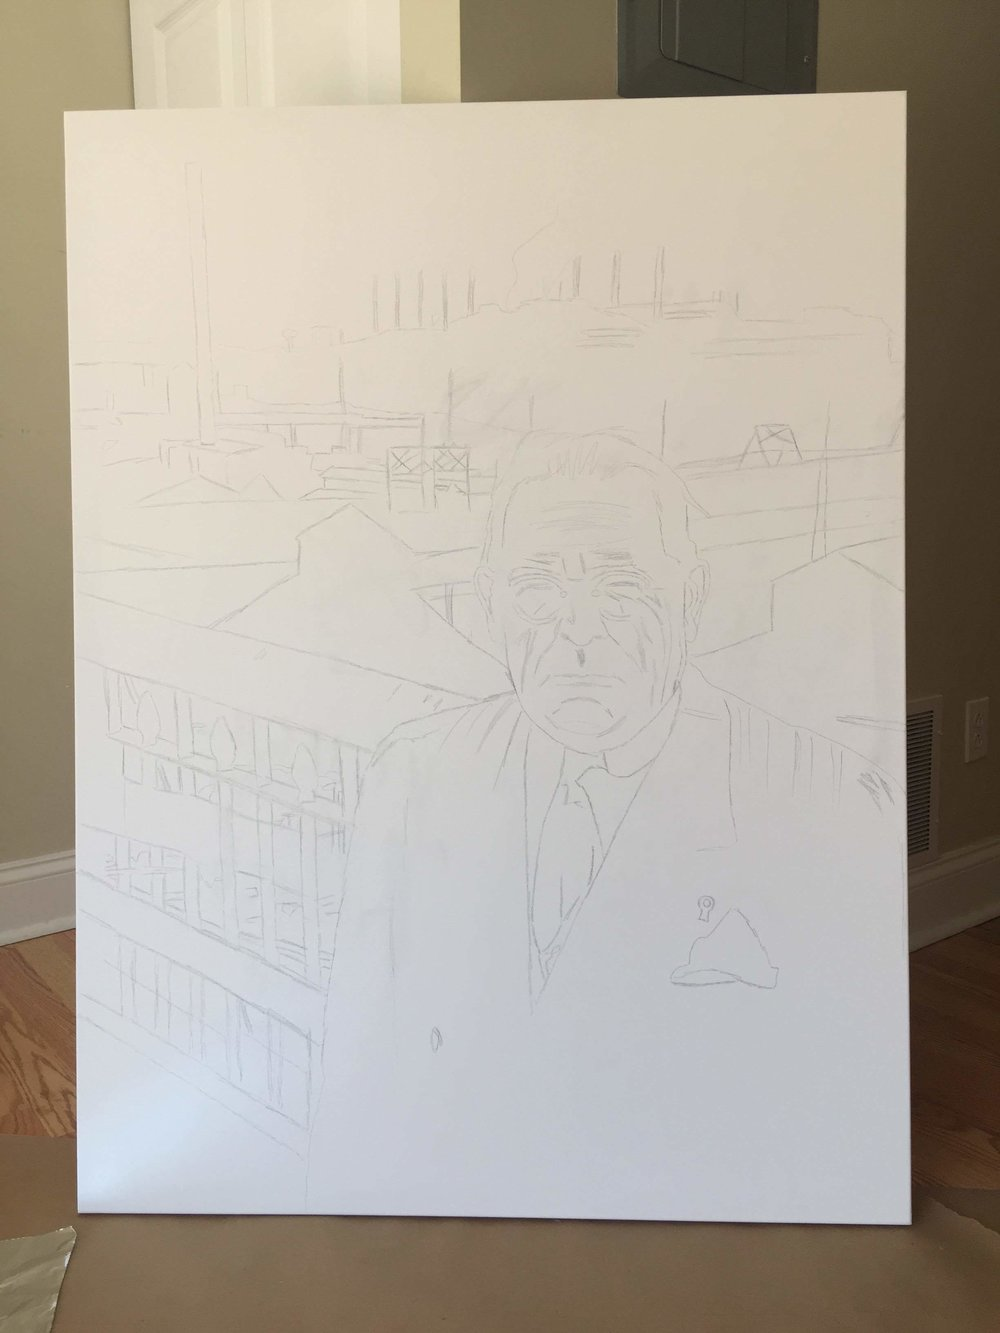 Outlining the image onto the canvas